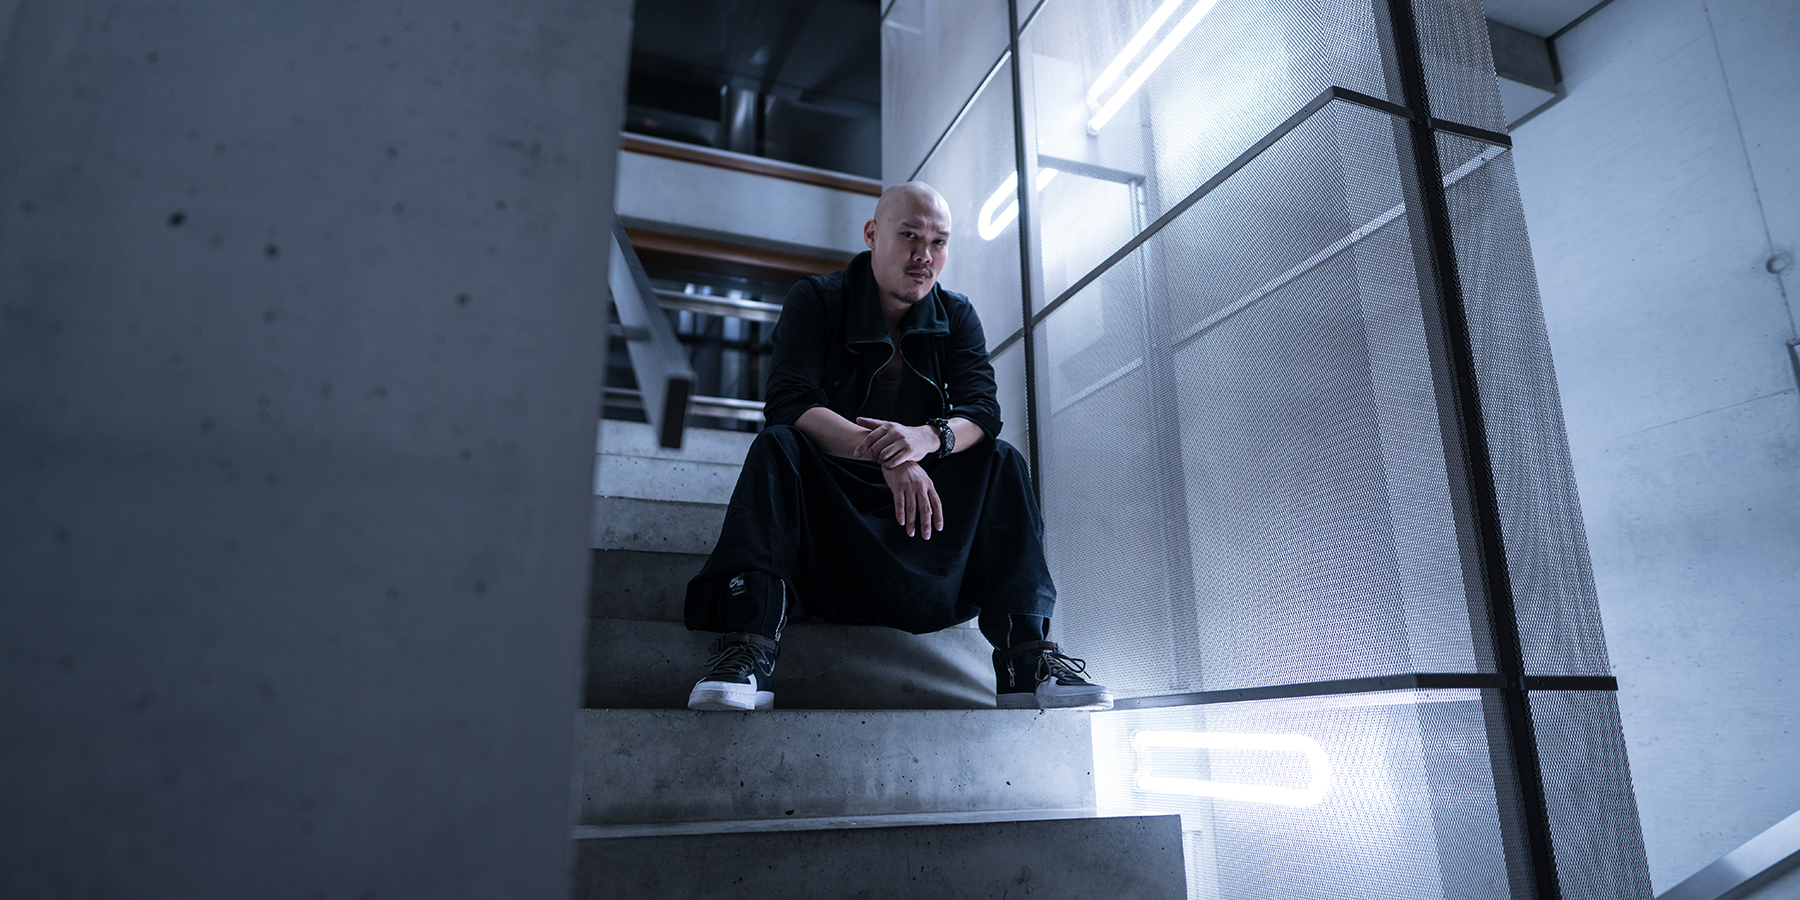 NikeLab Shanghai x ACRONYM® AF1 Downtown Berlin Launch - Errolson Hugh, Stairs by Jennifer Bin